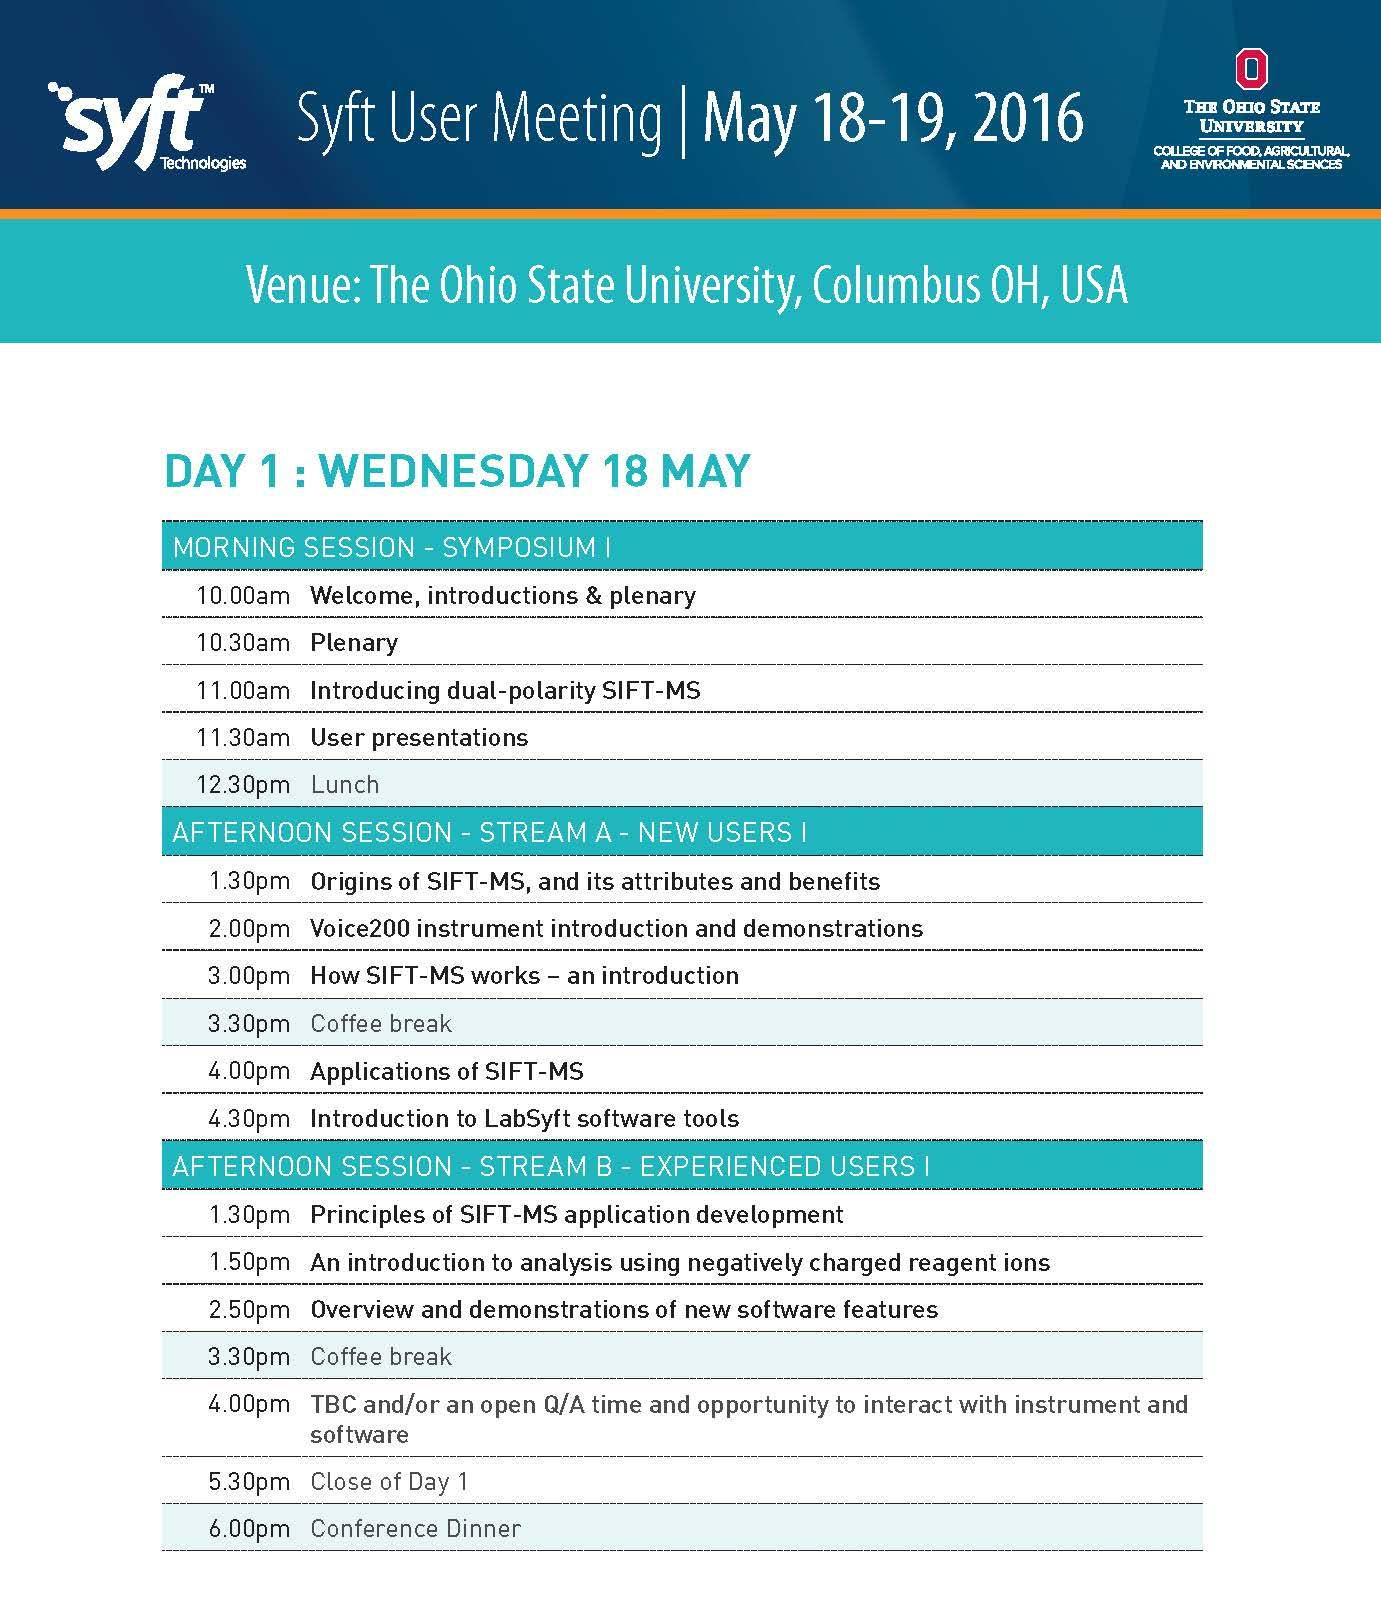 Syft 2016 User Meeting Schedule v1_Page_1